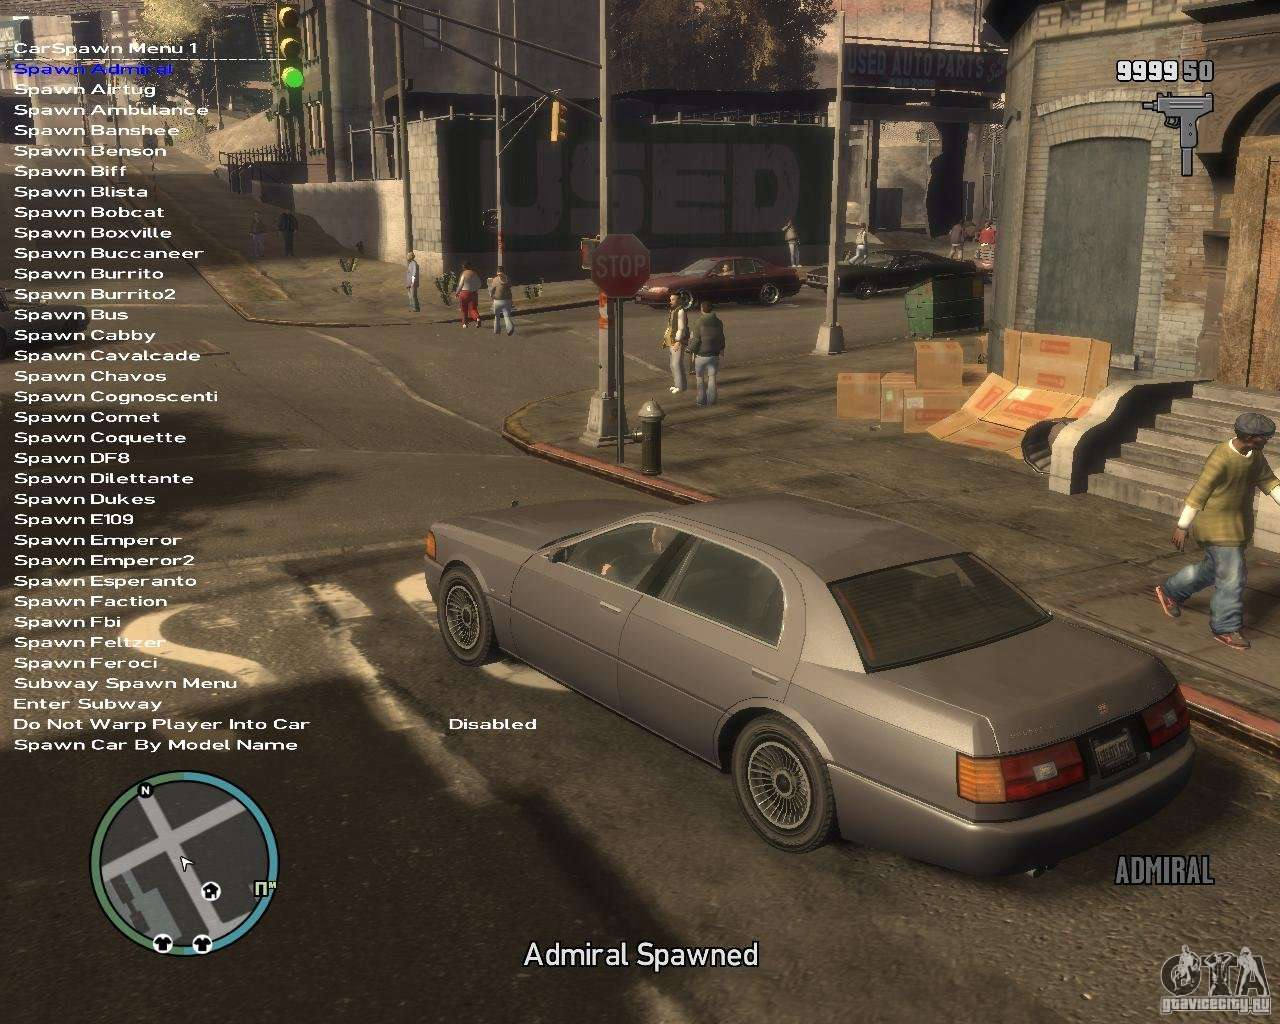 Gta 4 Pc Trainer 1 0 7 0 - xiluslinked